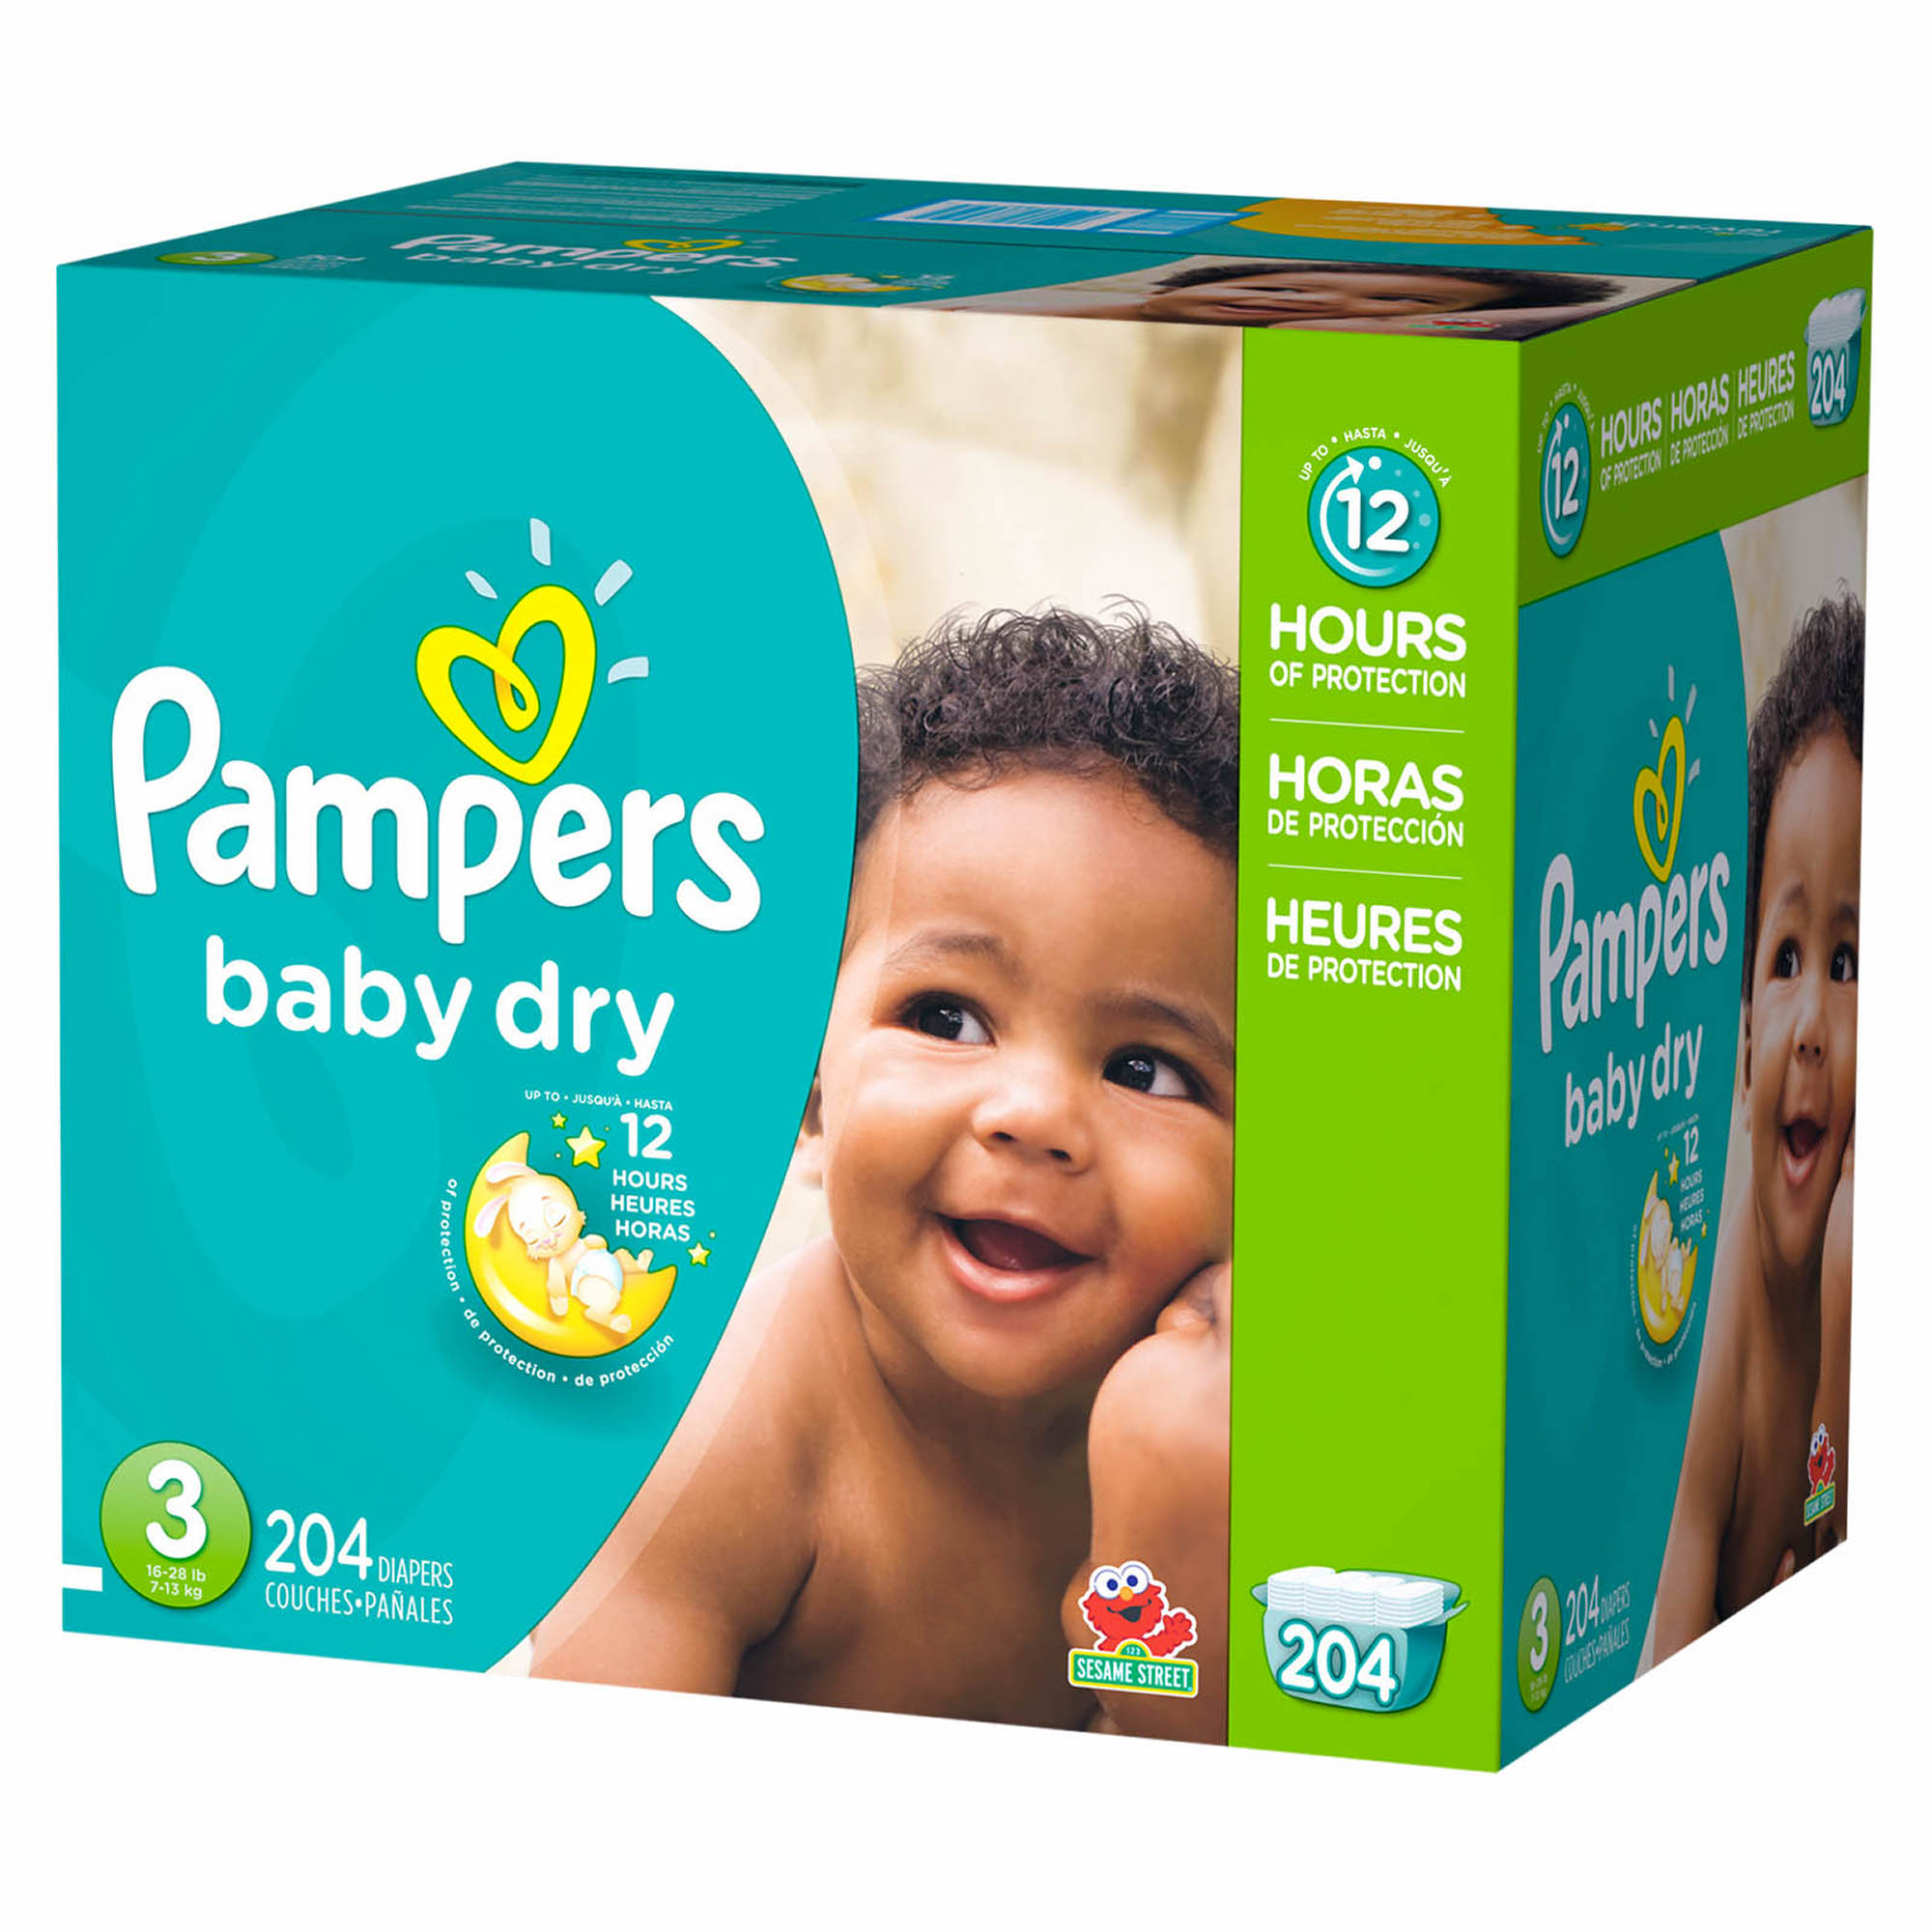 Buy Pampers® Swaddlers™ Count Size 2 Diapers from at Bed Bath & Beyond. Wrap your baby up in the softness of Pampers Swaddlers. Up to 12 hours of overnight protection and Swaddlers color-changing wetness indicator help you ensure your baby is as comfortable as trafficwavereview.tk your baby up in the softness of Pampers Swaddlers. Up to 12 Price: $